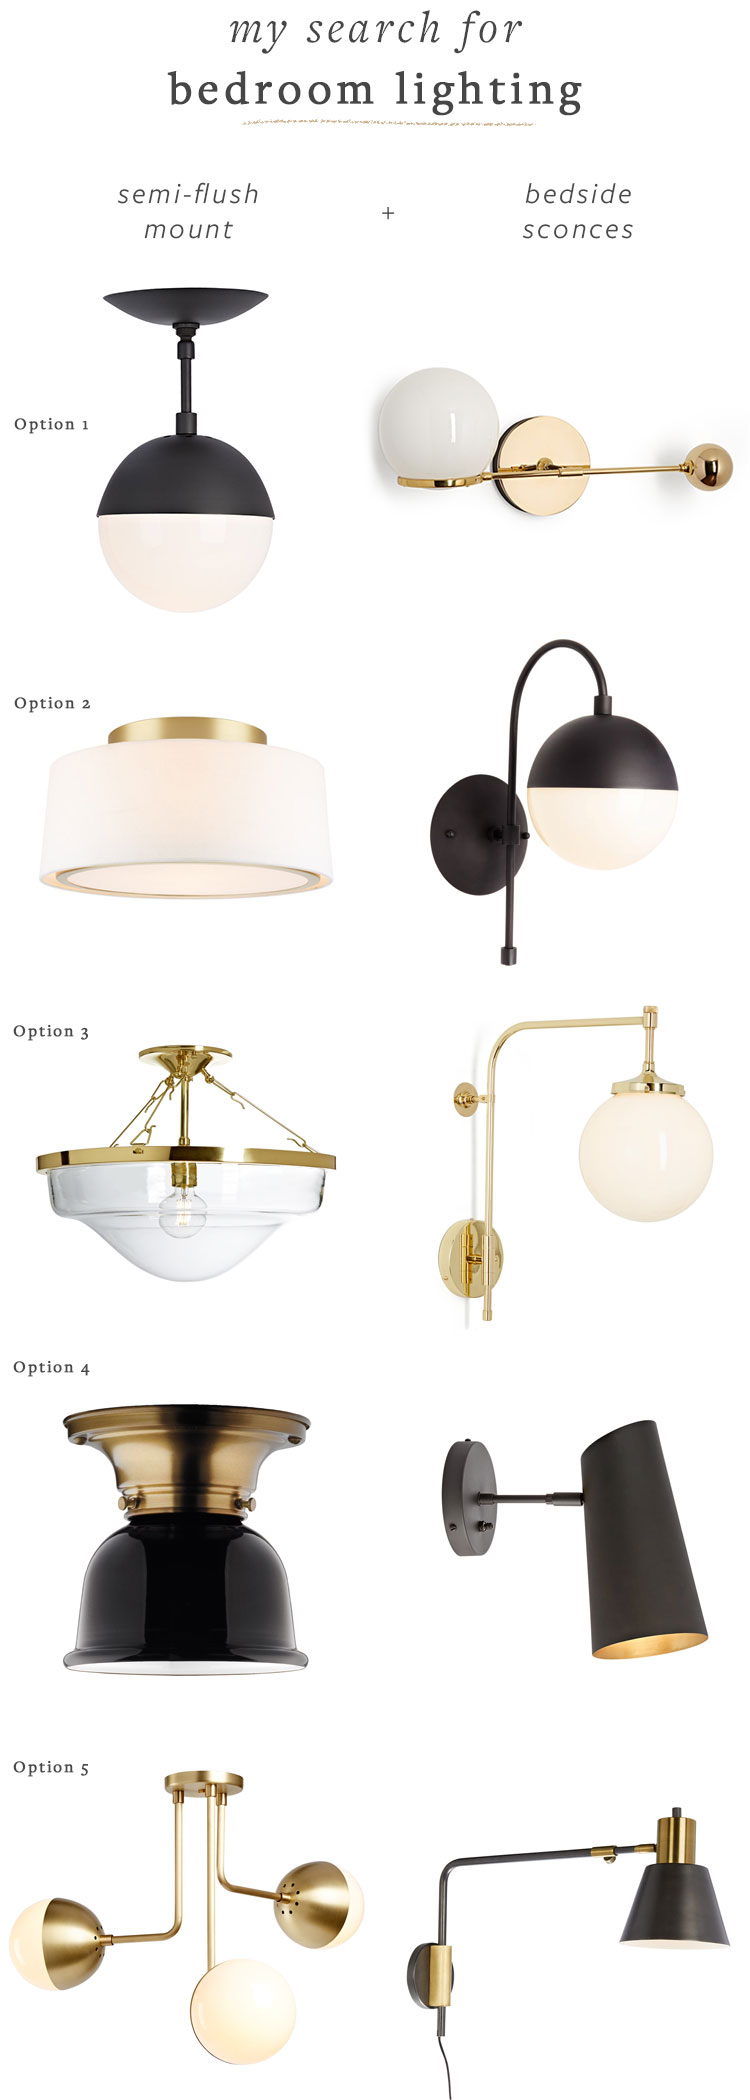 Matte Black And Br Bedroom Lighting Fixtures Round Up Flush Mount Semi